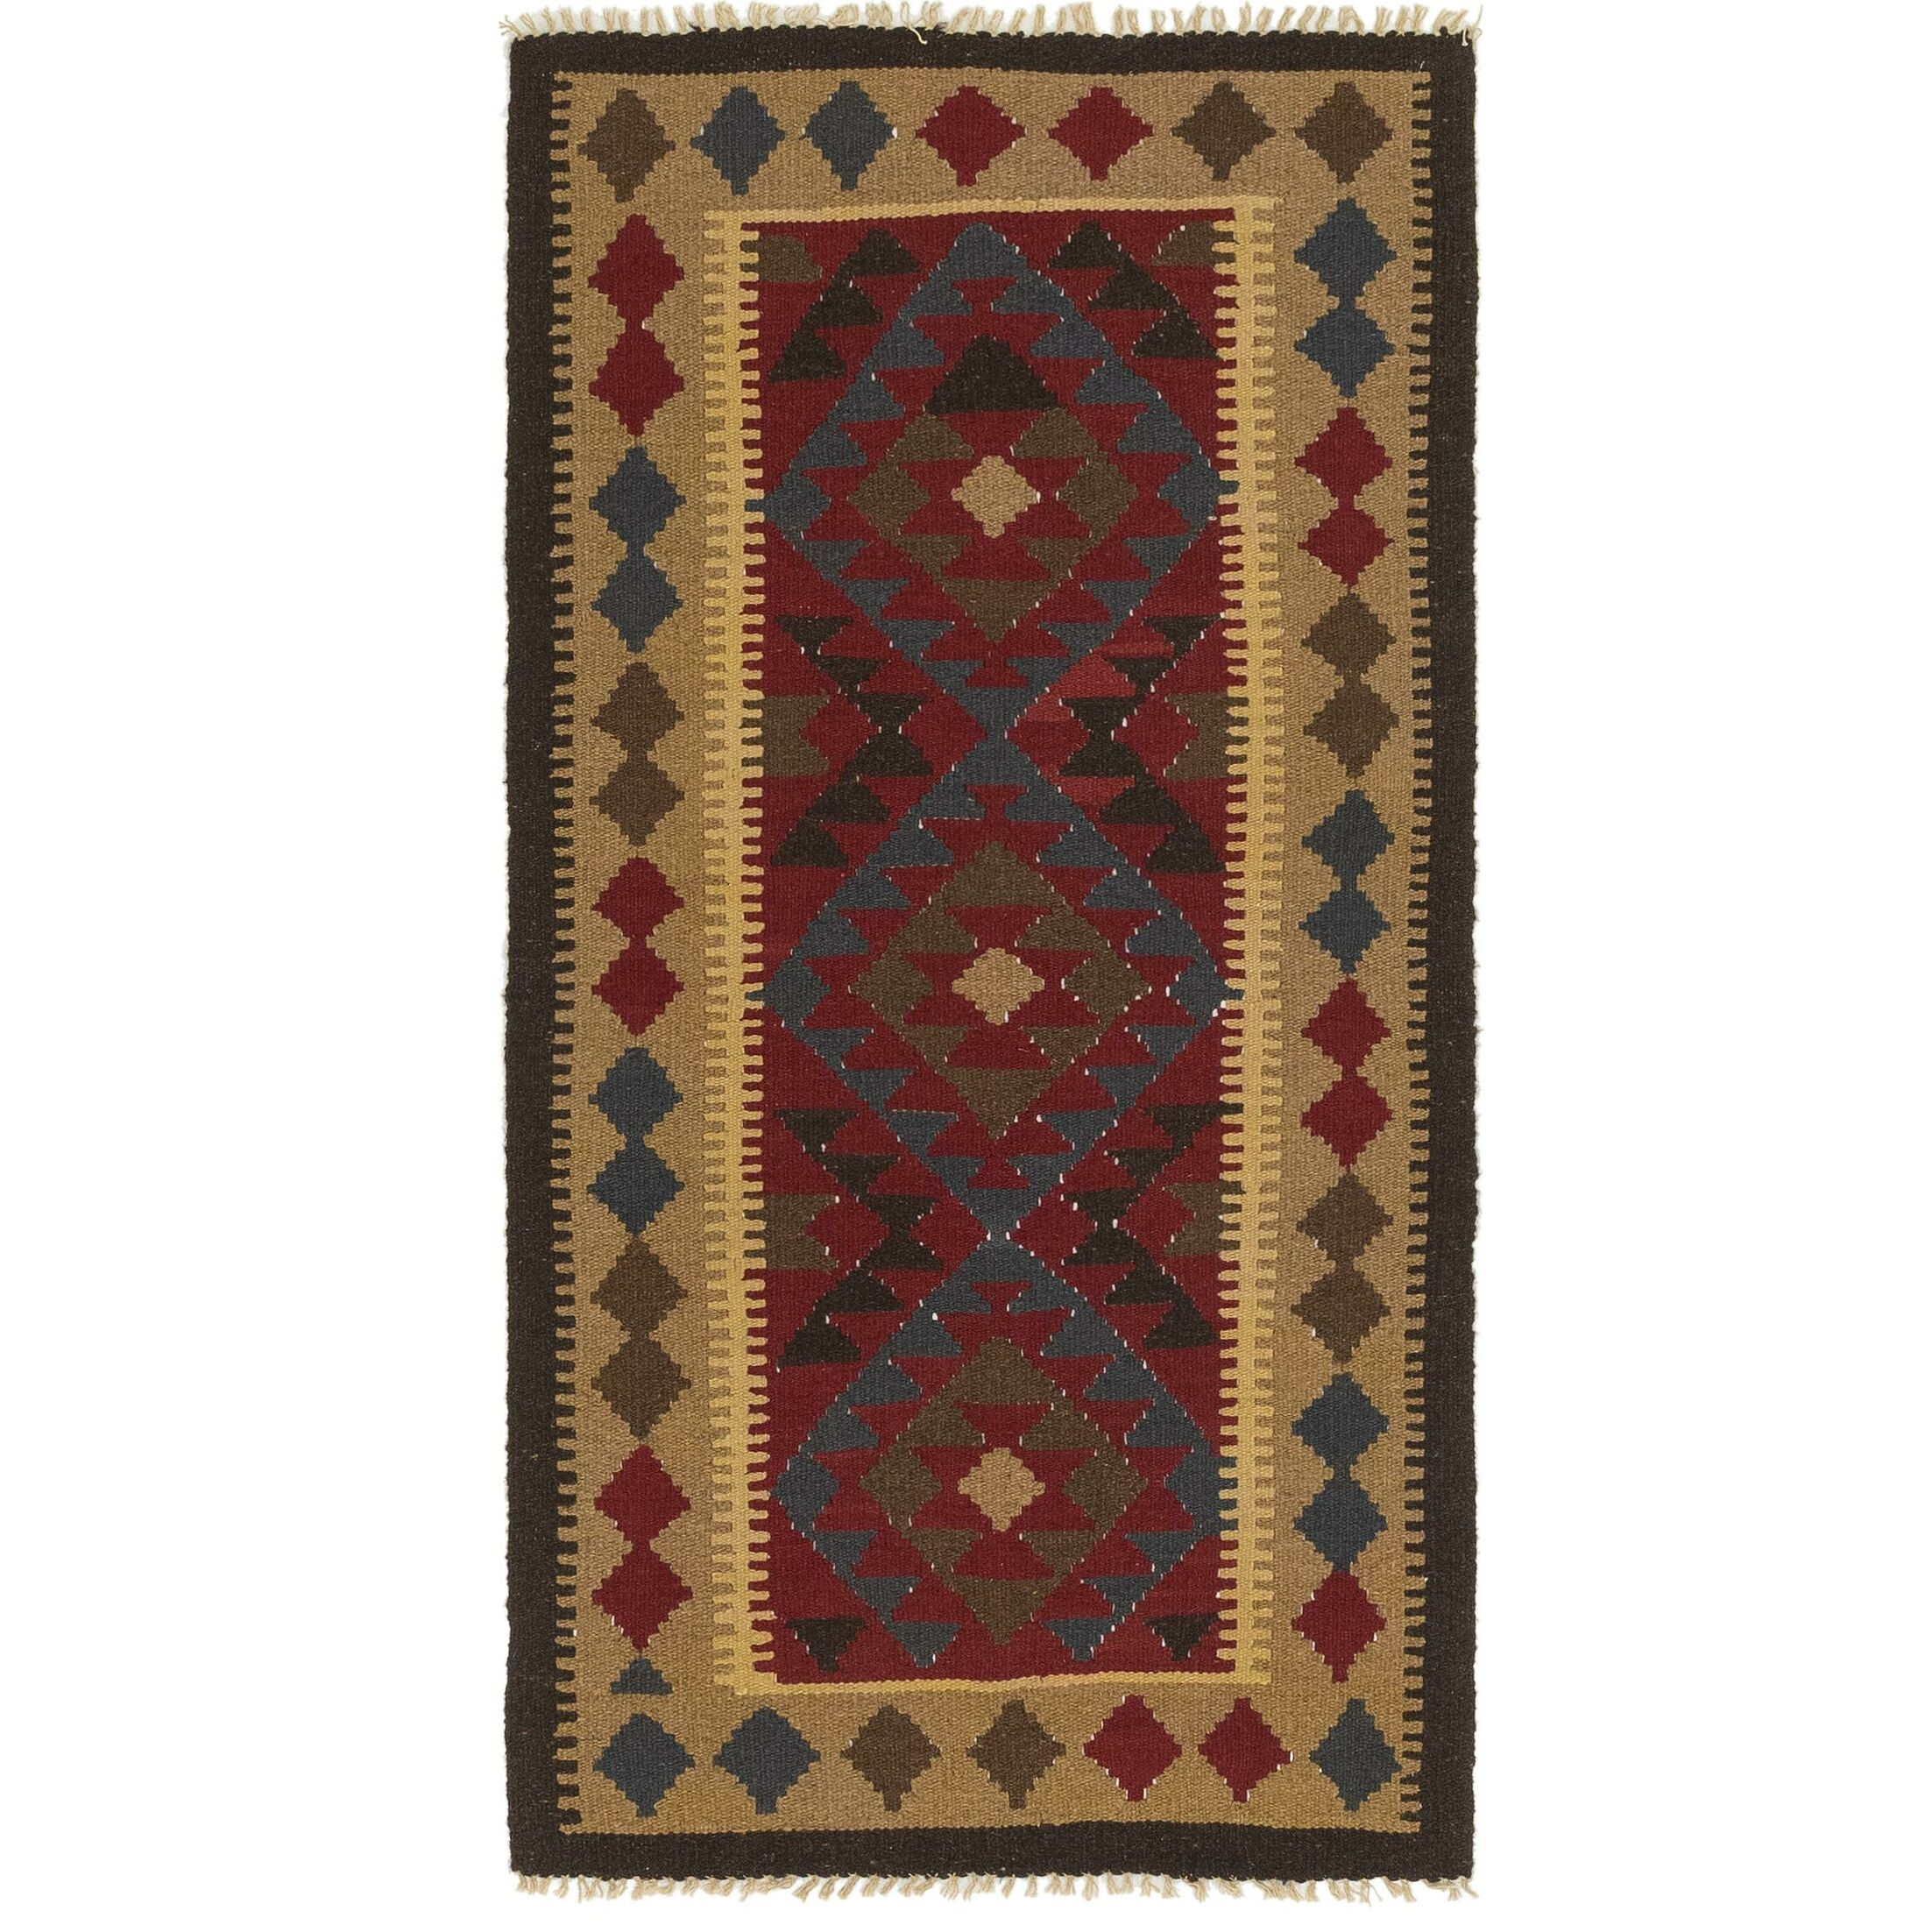 One-of-a-Kind Lorain Hand-Knotted Runner 3'2